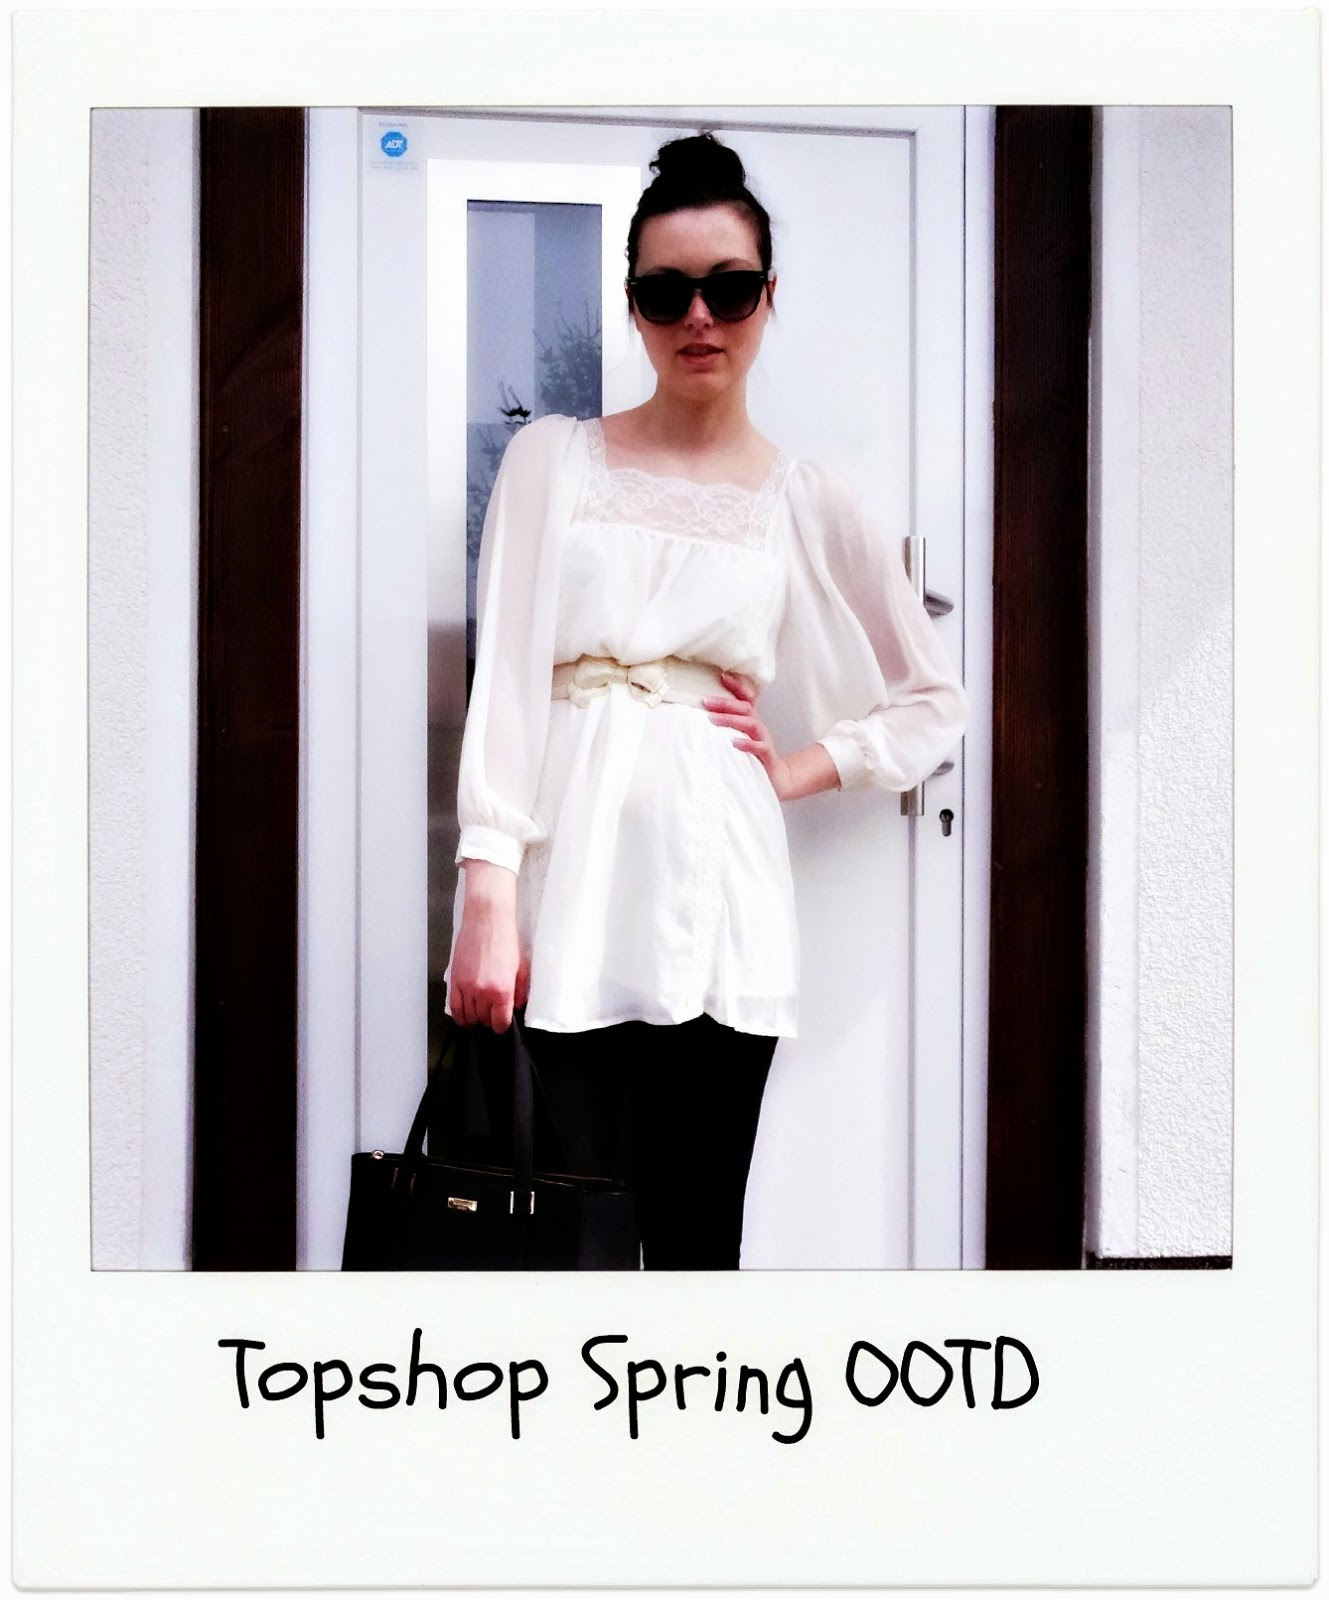 Topshop spring outfit